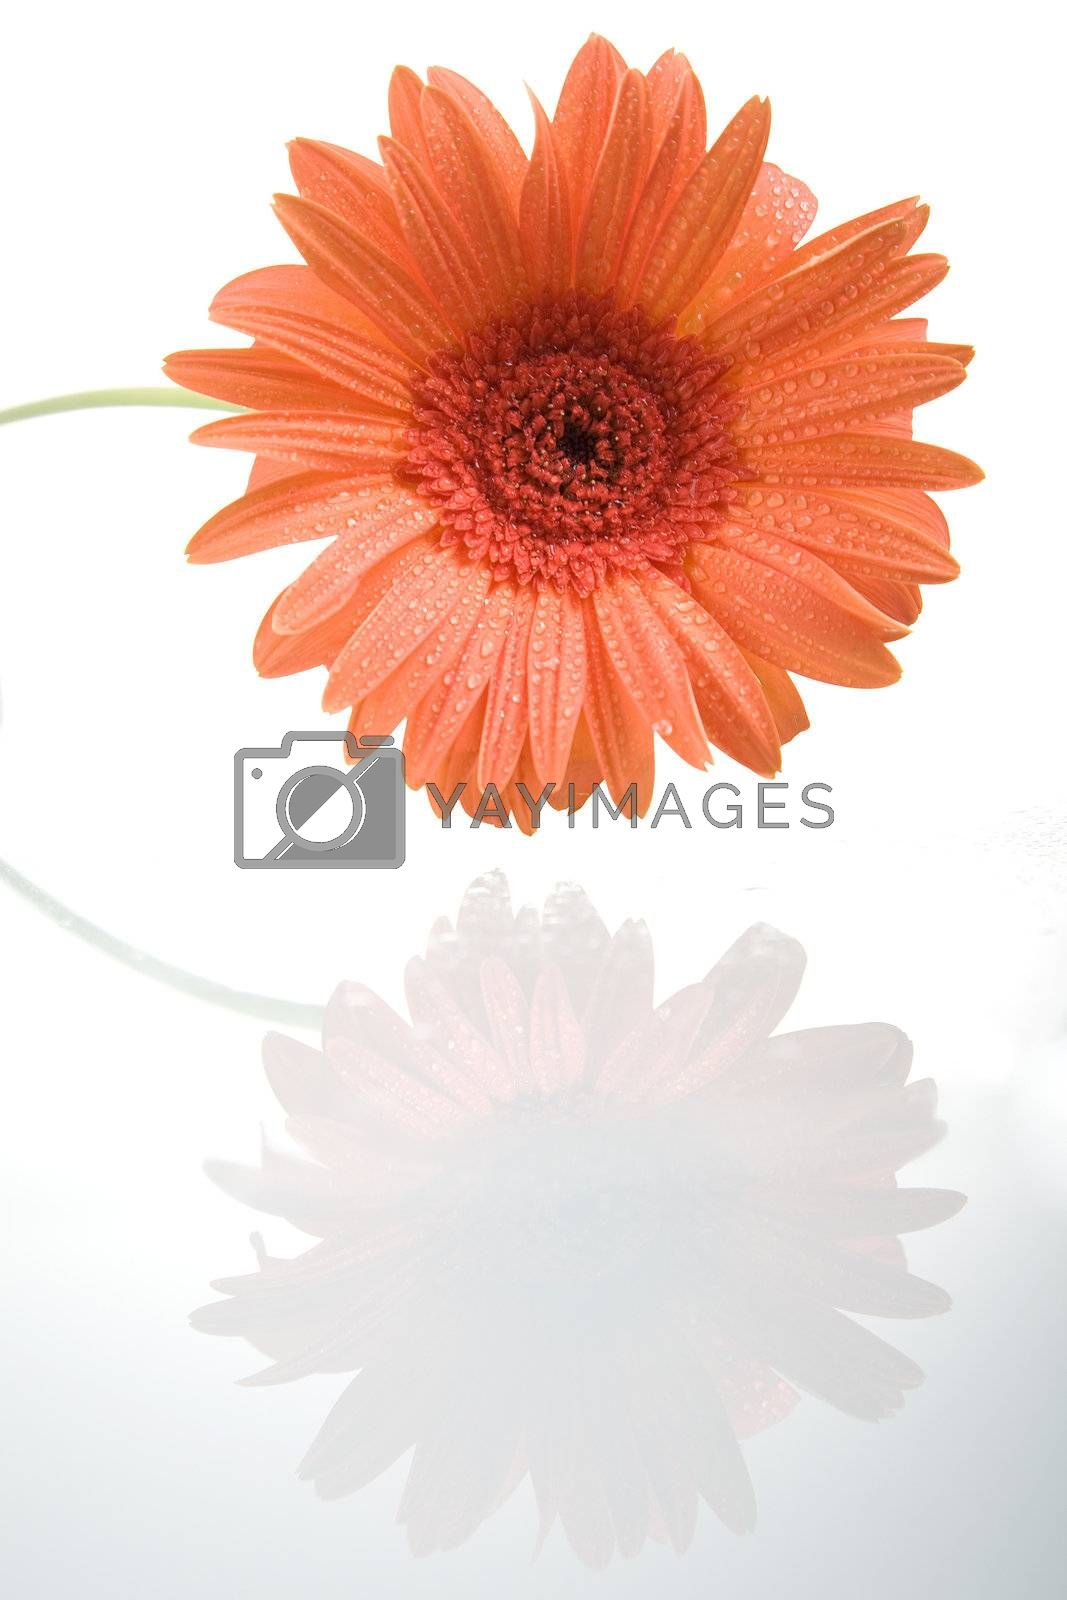 Gerber flower with reflection isolated on white background.